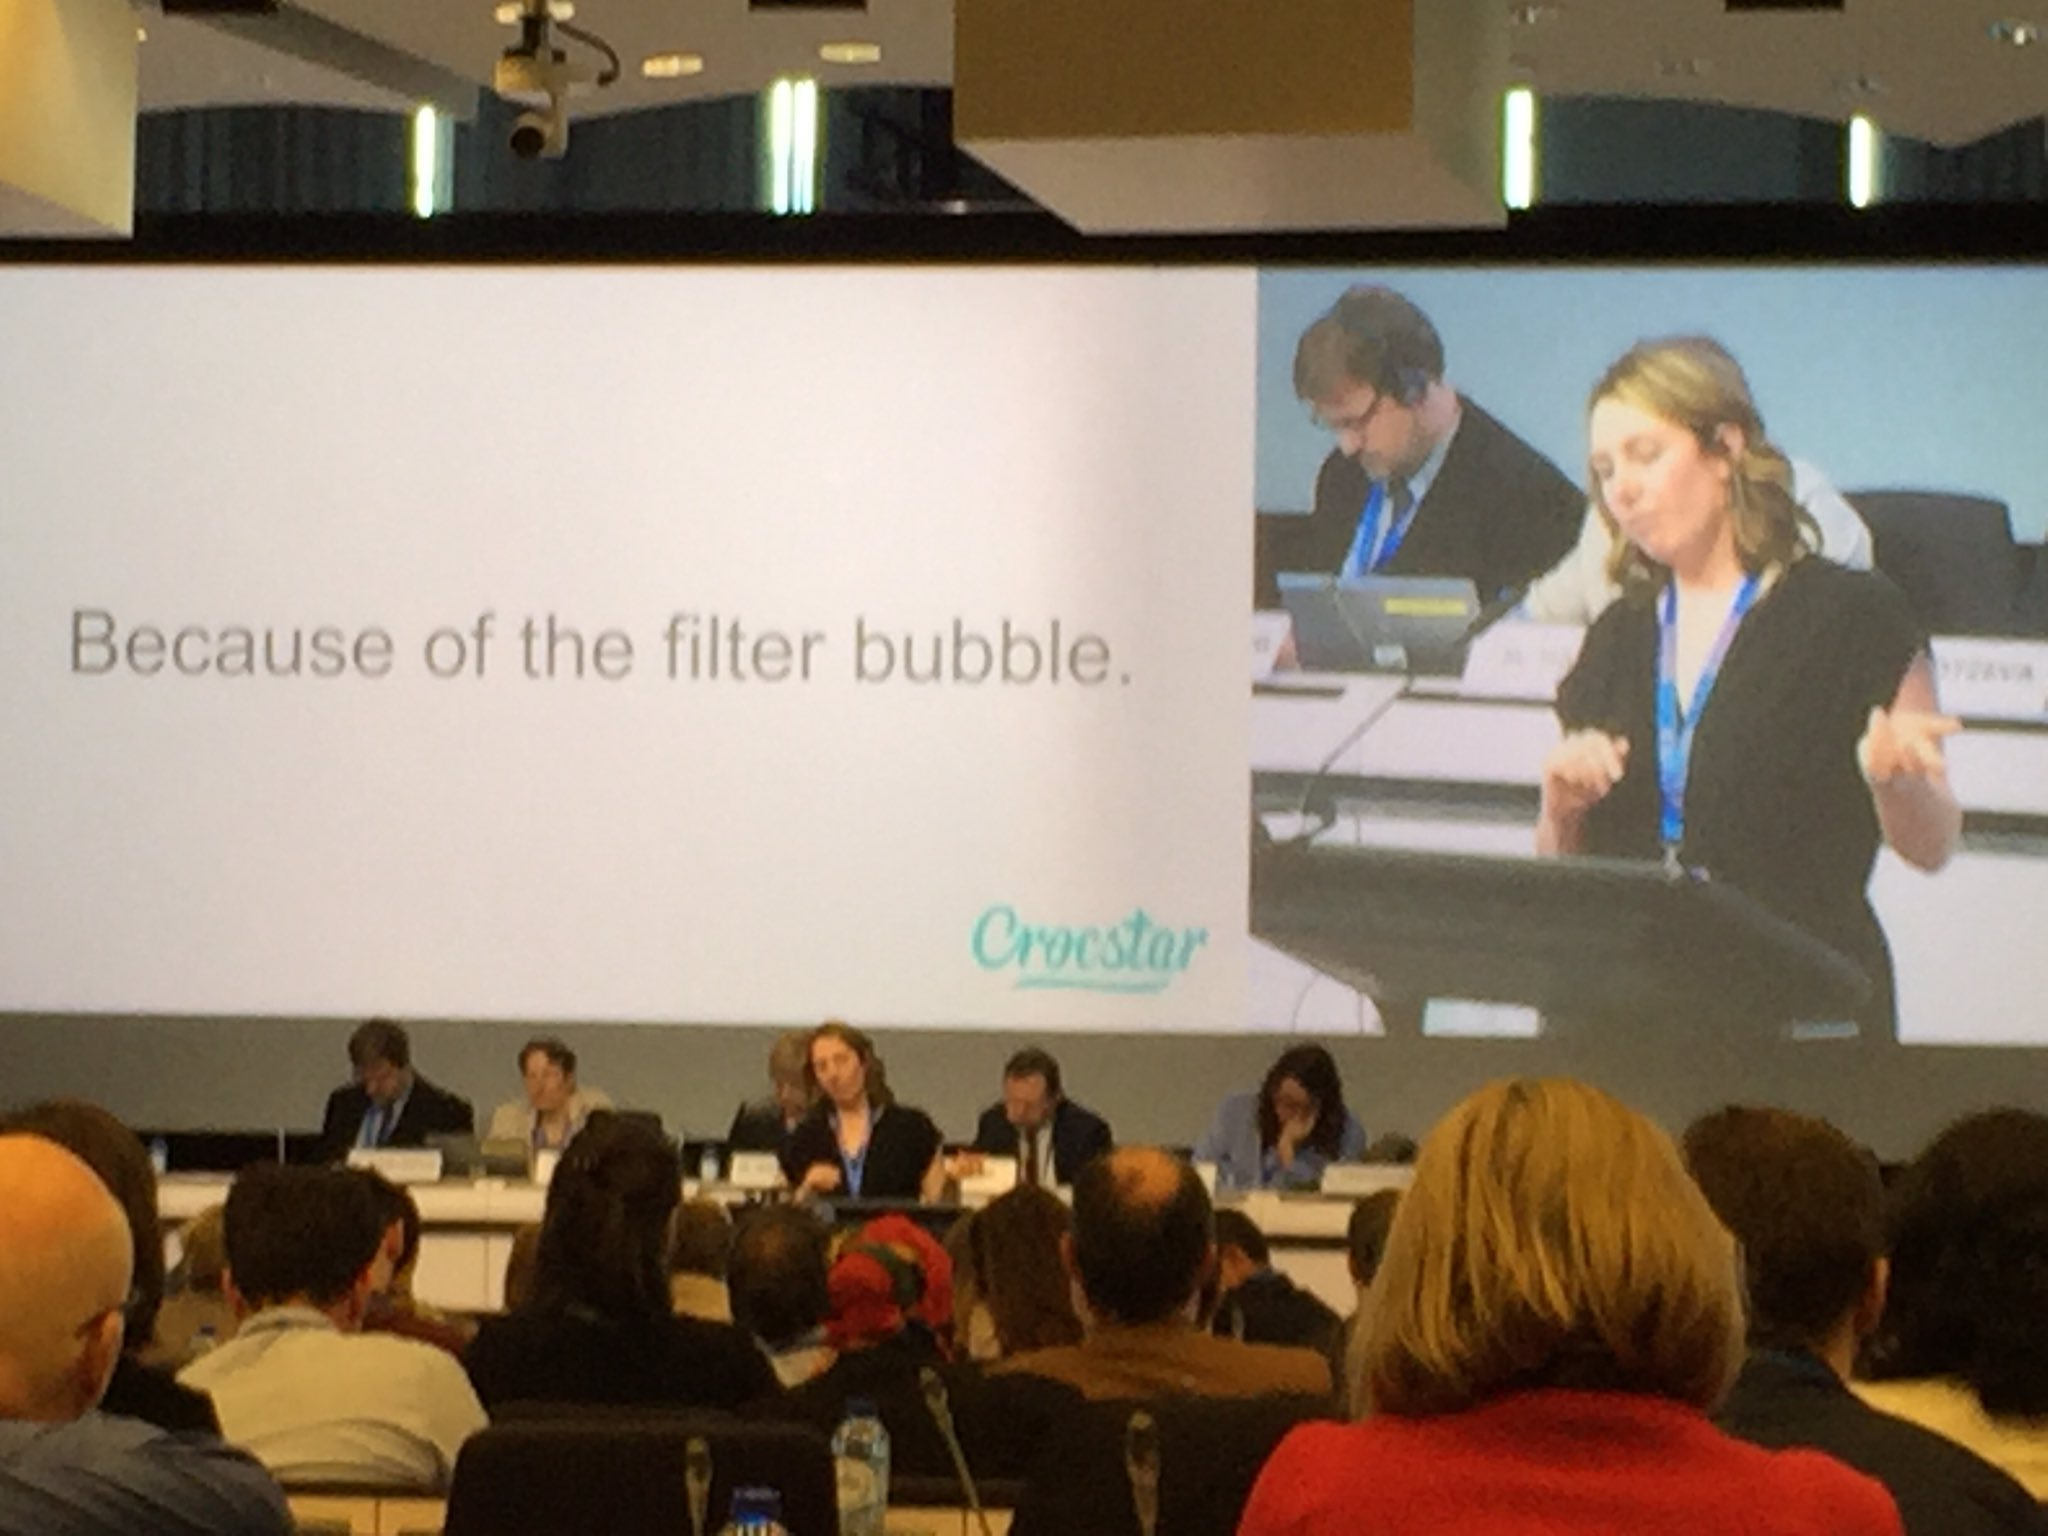 'New statistics users difficult to reach in their filter bubble, need new straregies' @crocstar #NTTS2017 https://t.co/bySkIgg5Lh